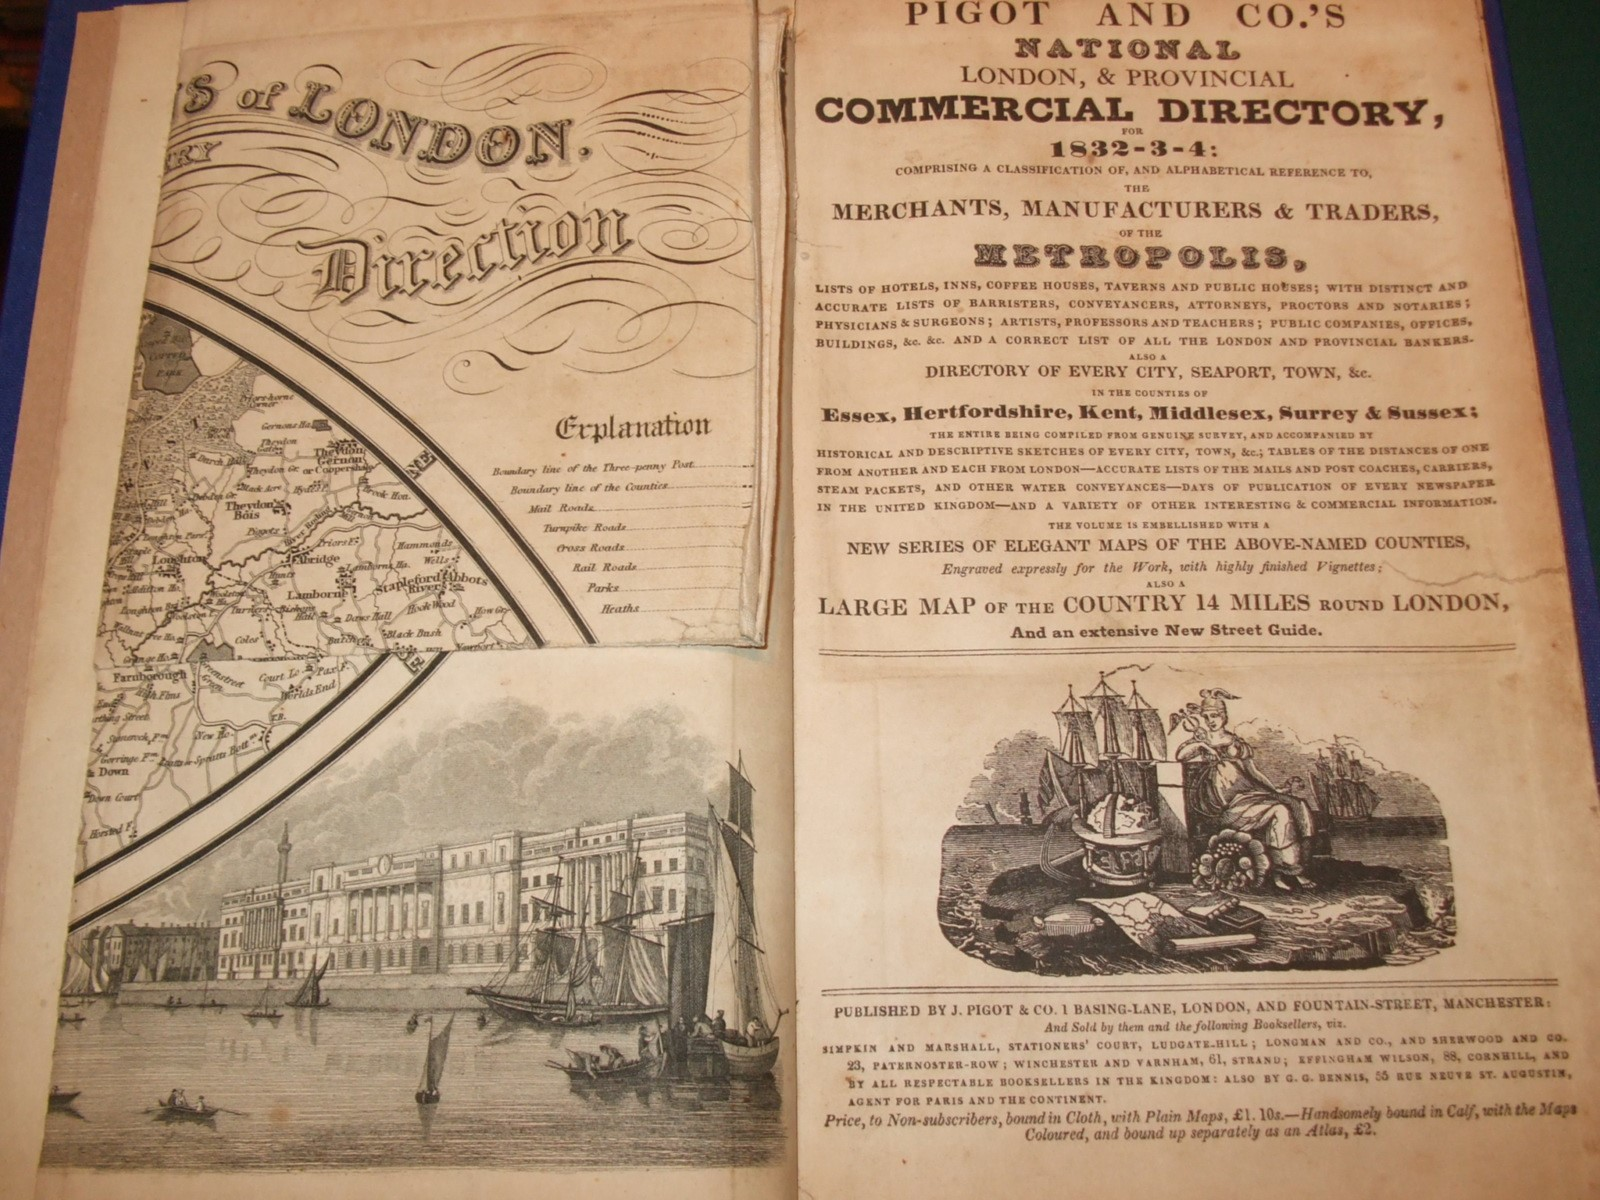 Pigot and Co 's national London and provincial commercial directory for  1832-3-4 : comprising     the merchants, manufacturers, and traders of the